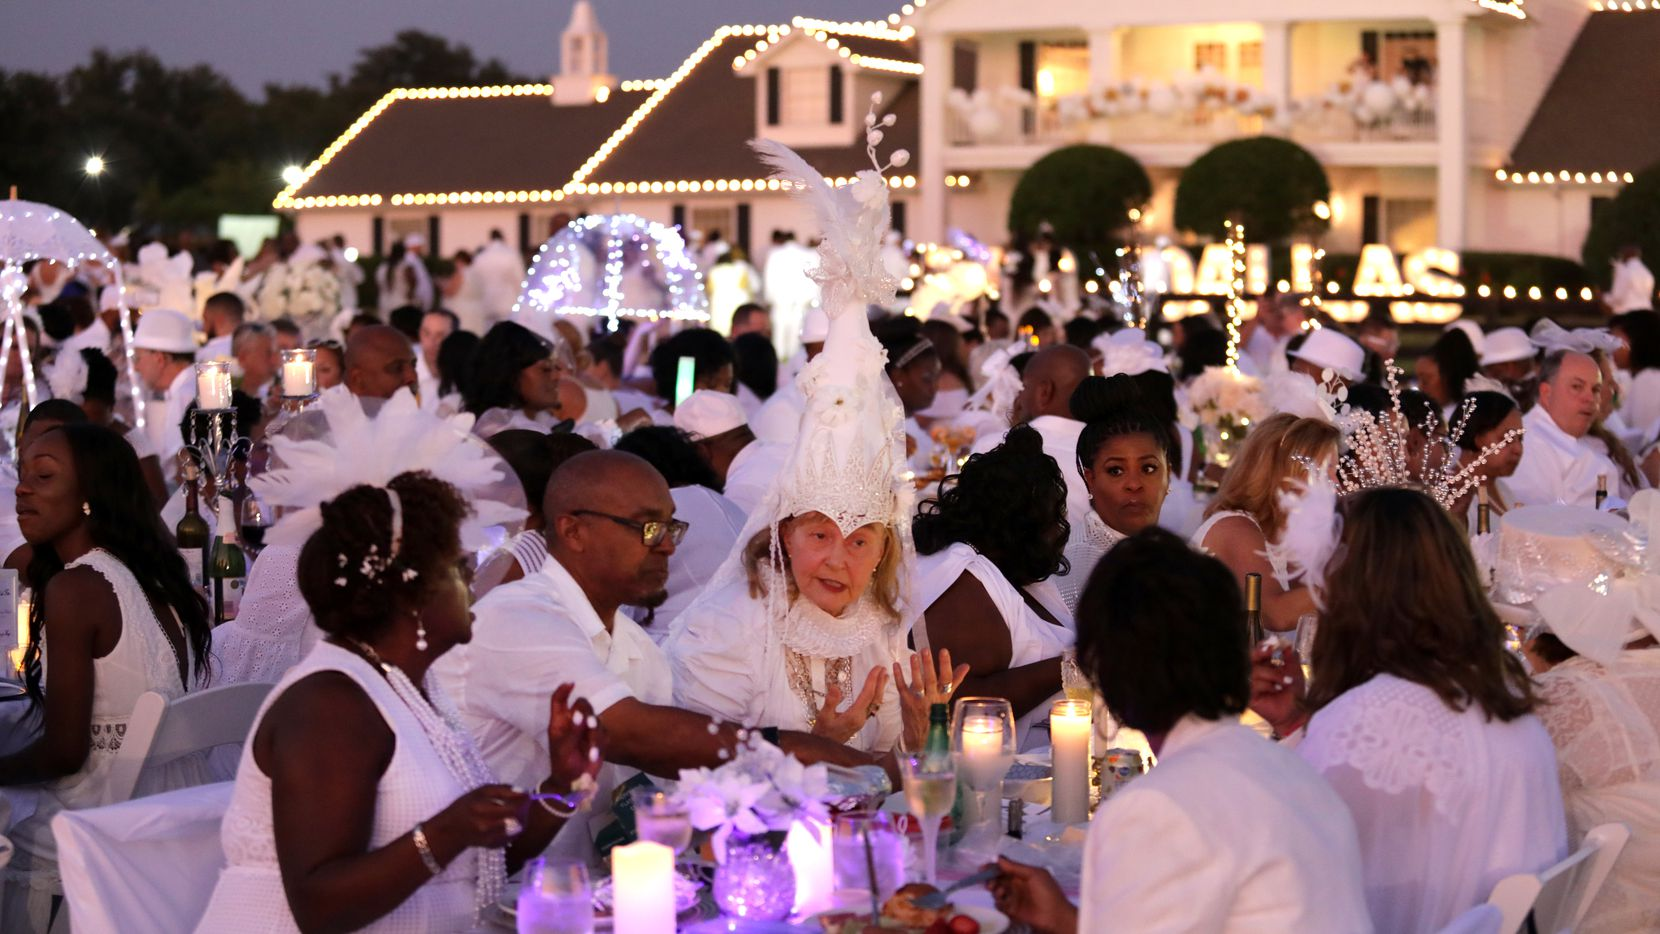 The Diner en Blanc event at Southfork Ranch in Parker, TX, on Oct. 5, 2019. (Jason Janik/Special Contributor)